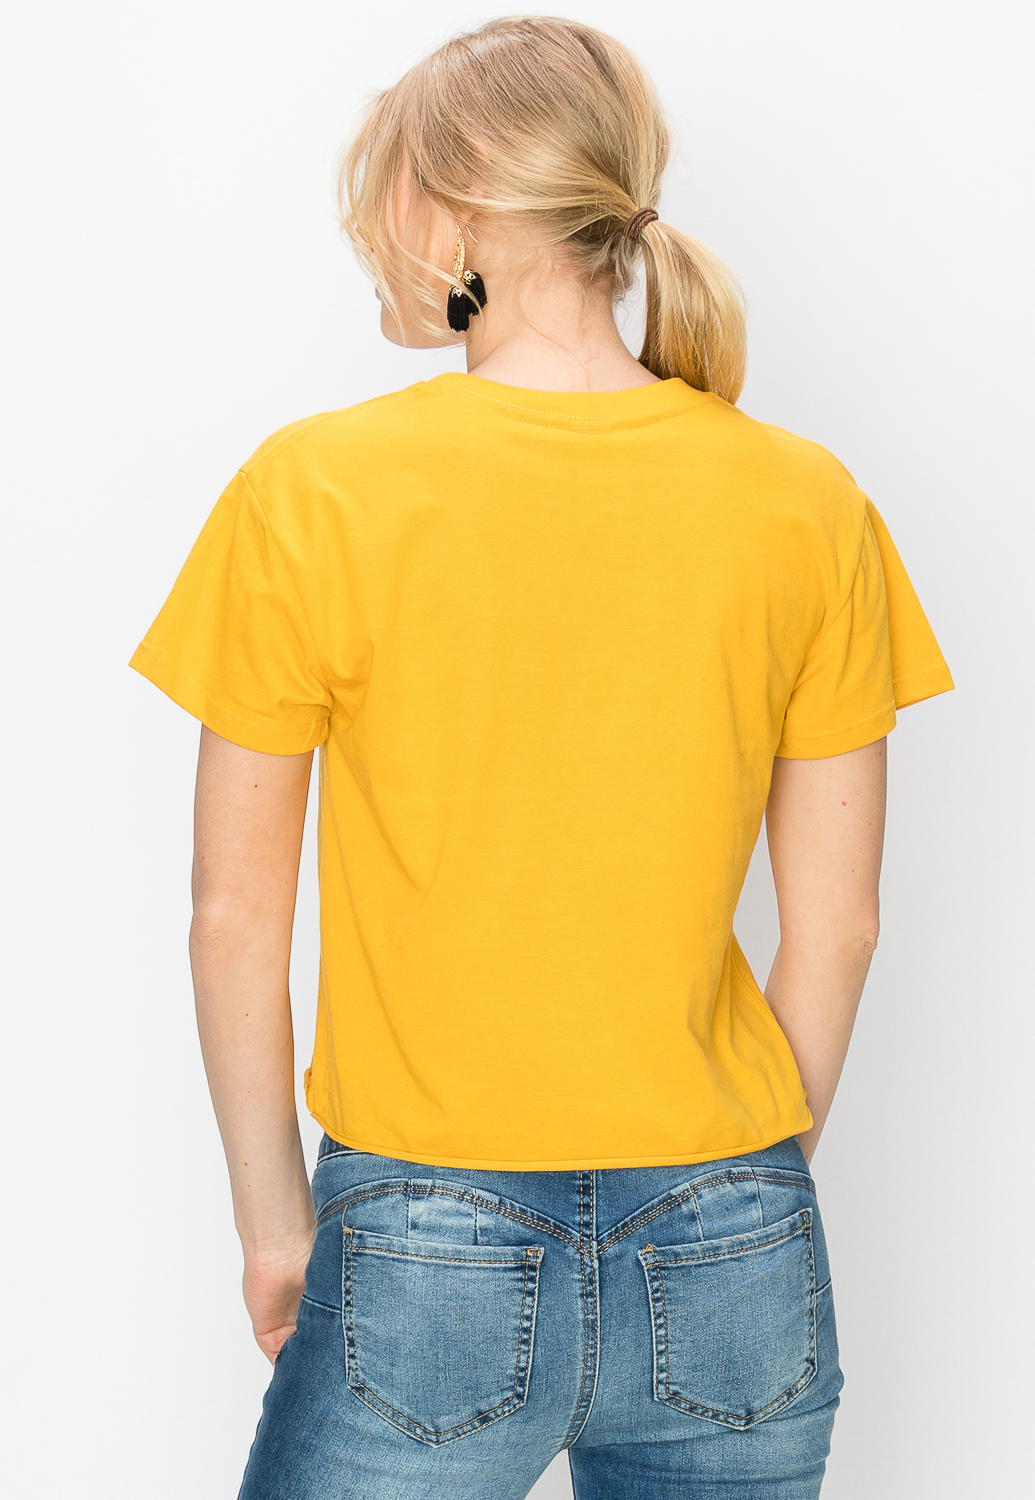 Winnie The Pooh Graphic Top